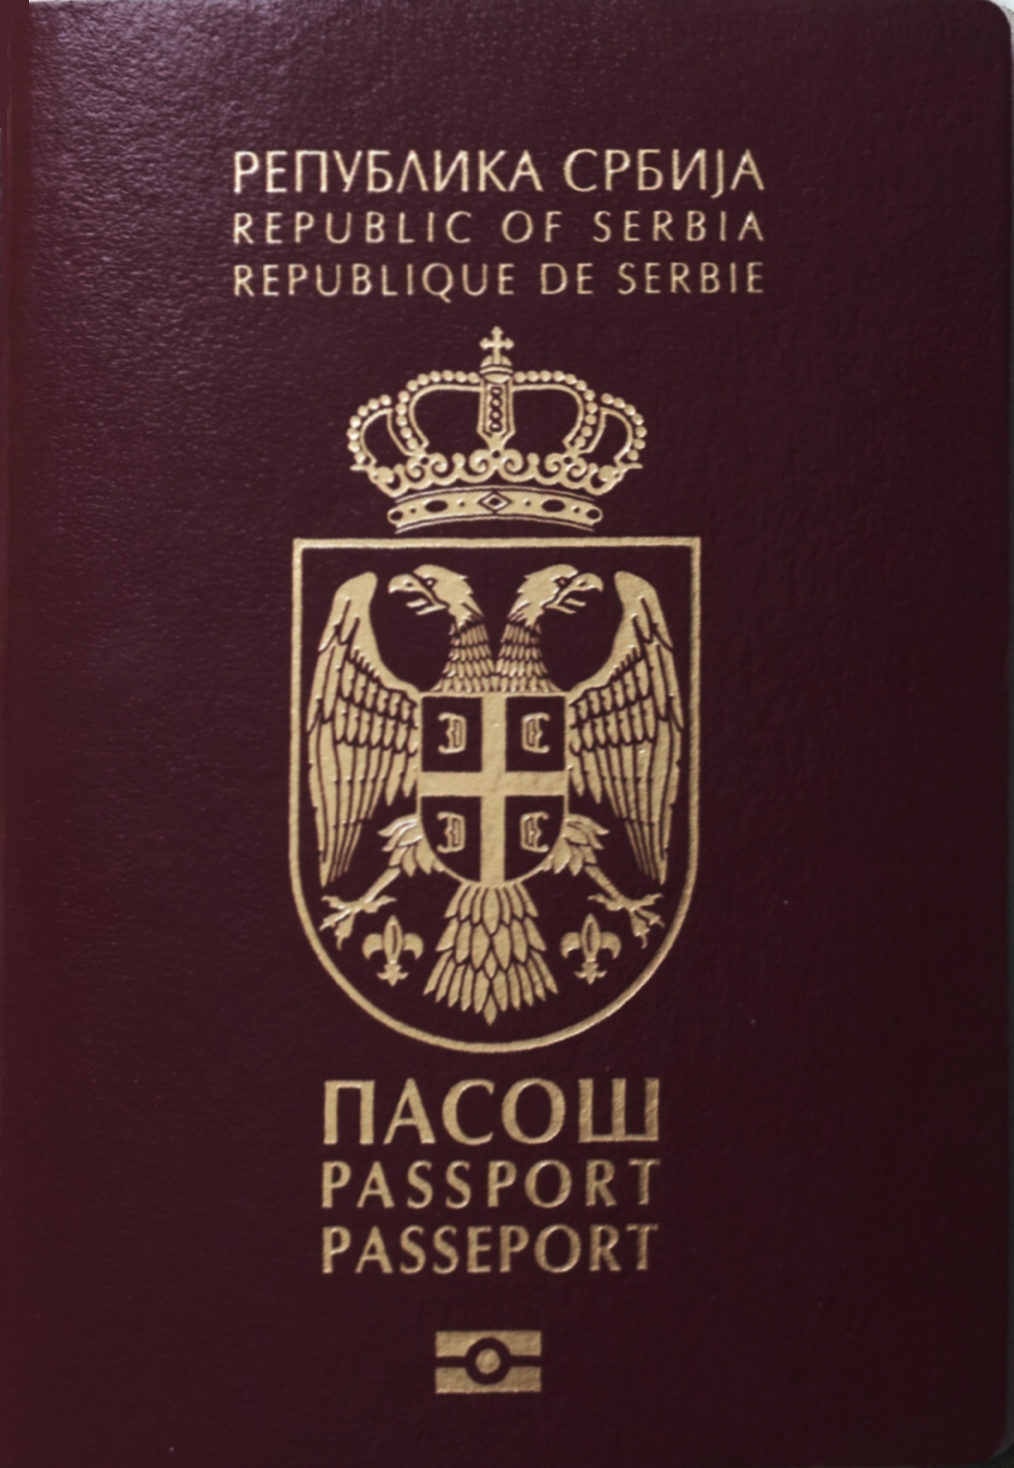 Serbian passport cover